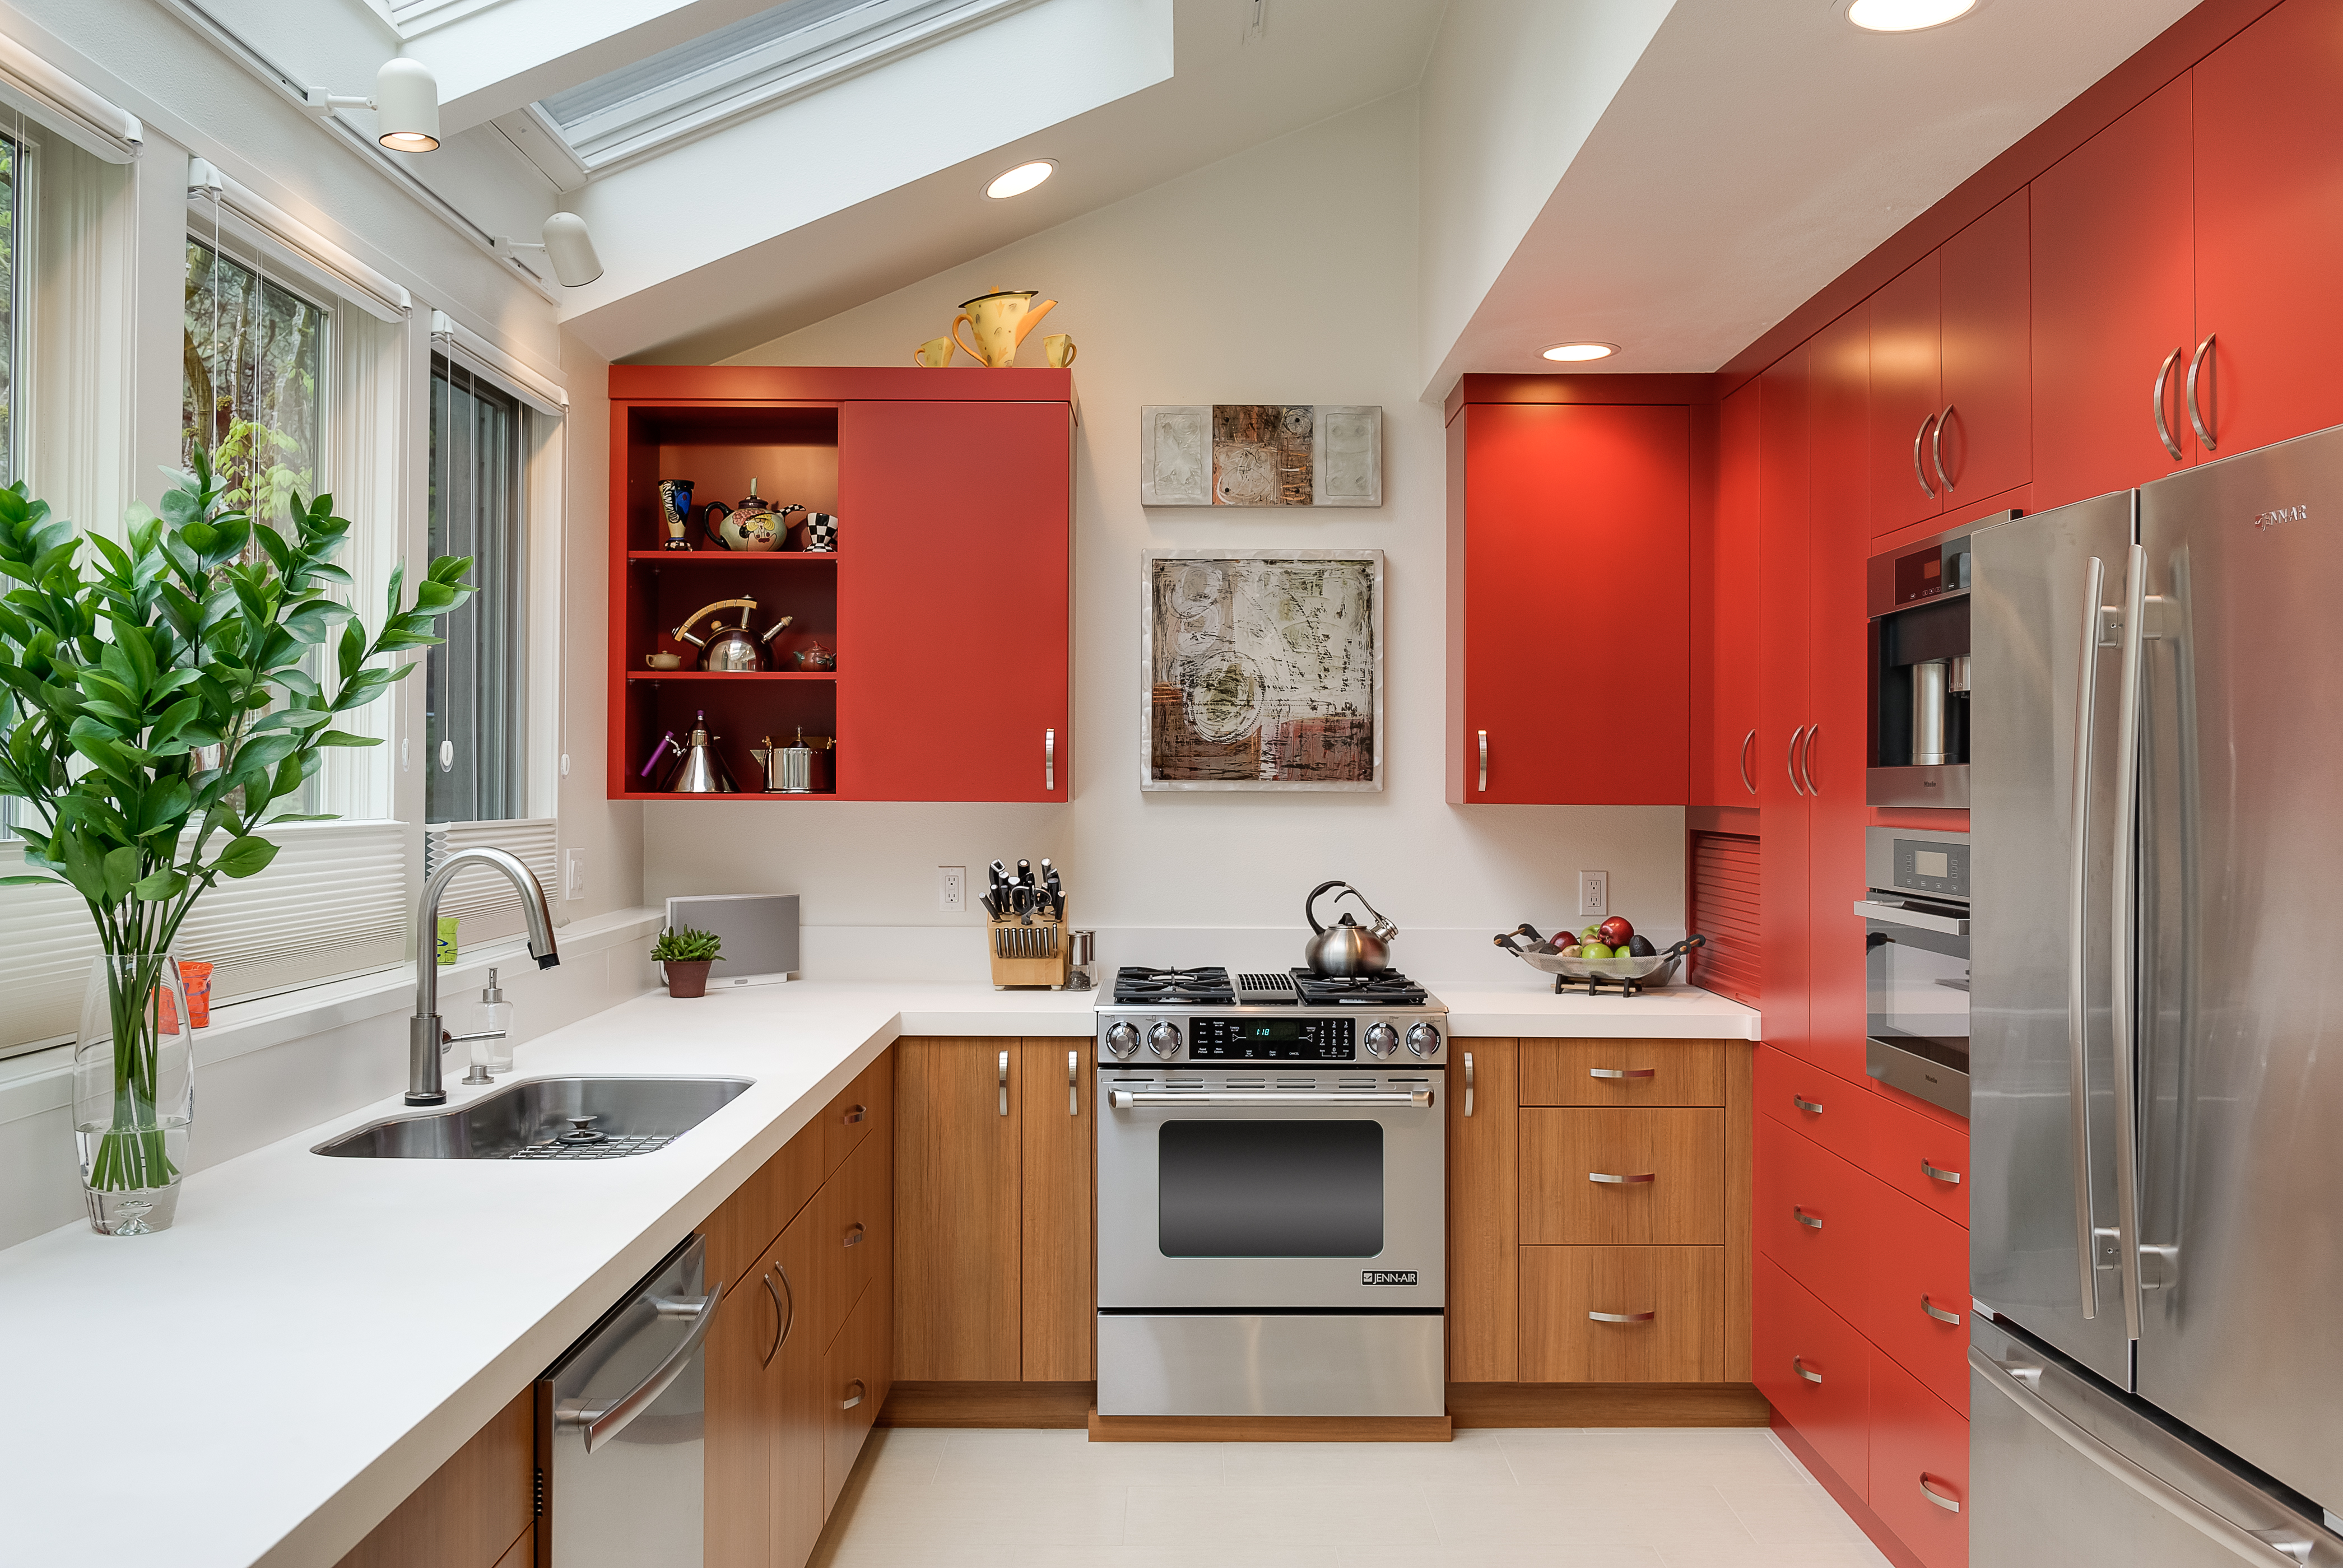 downsizing your space, downsizing your kitchen